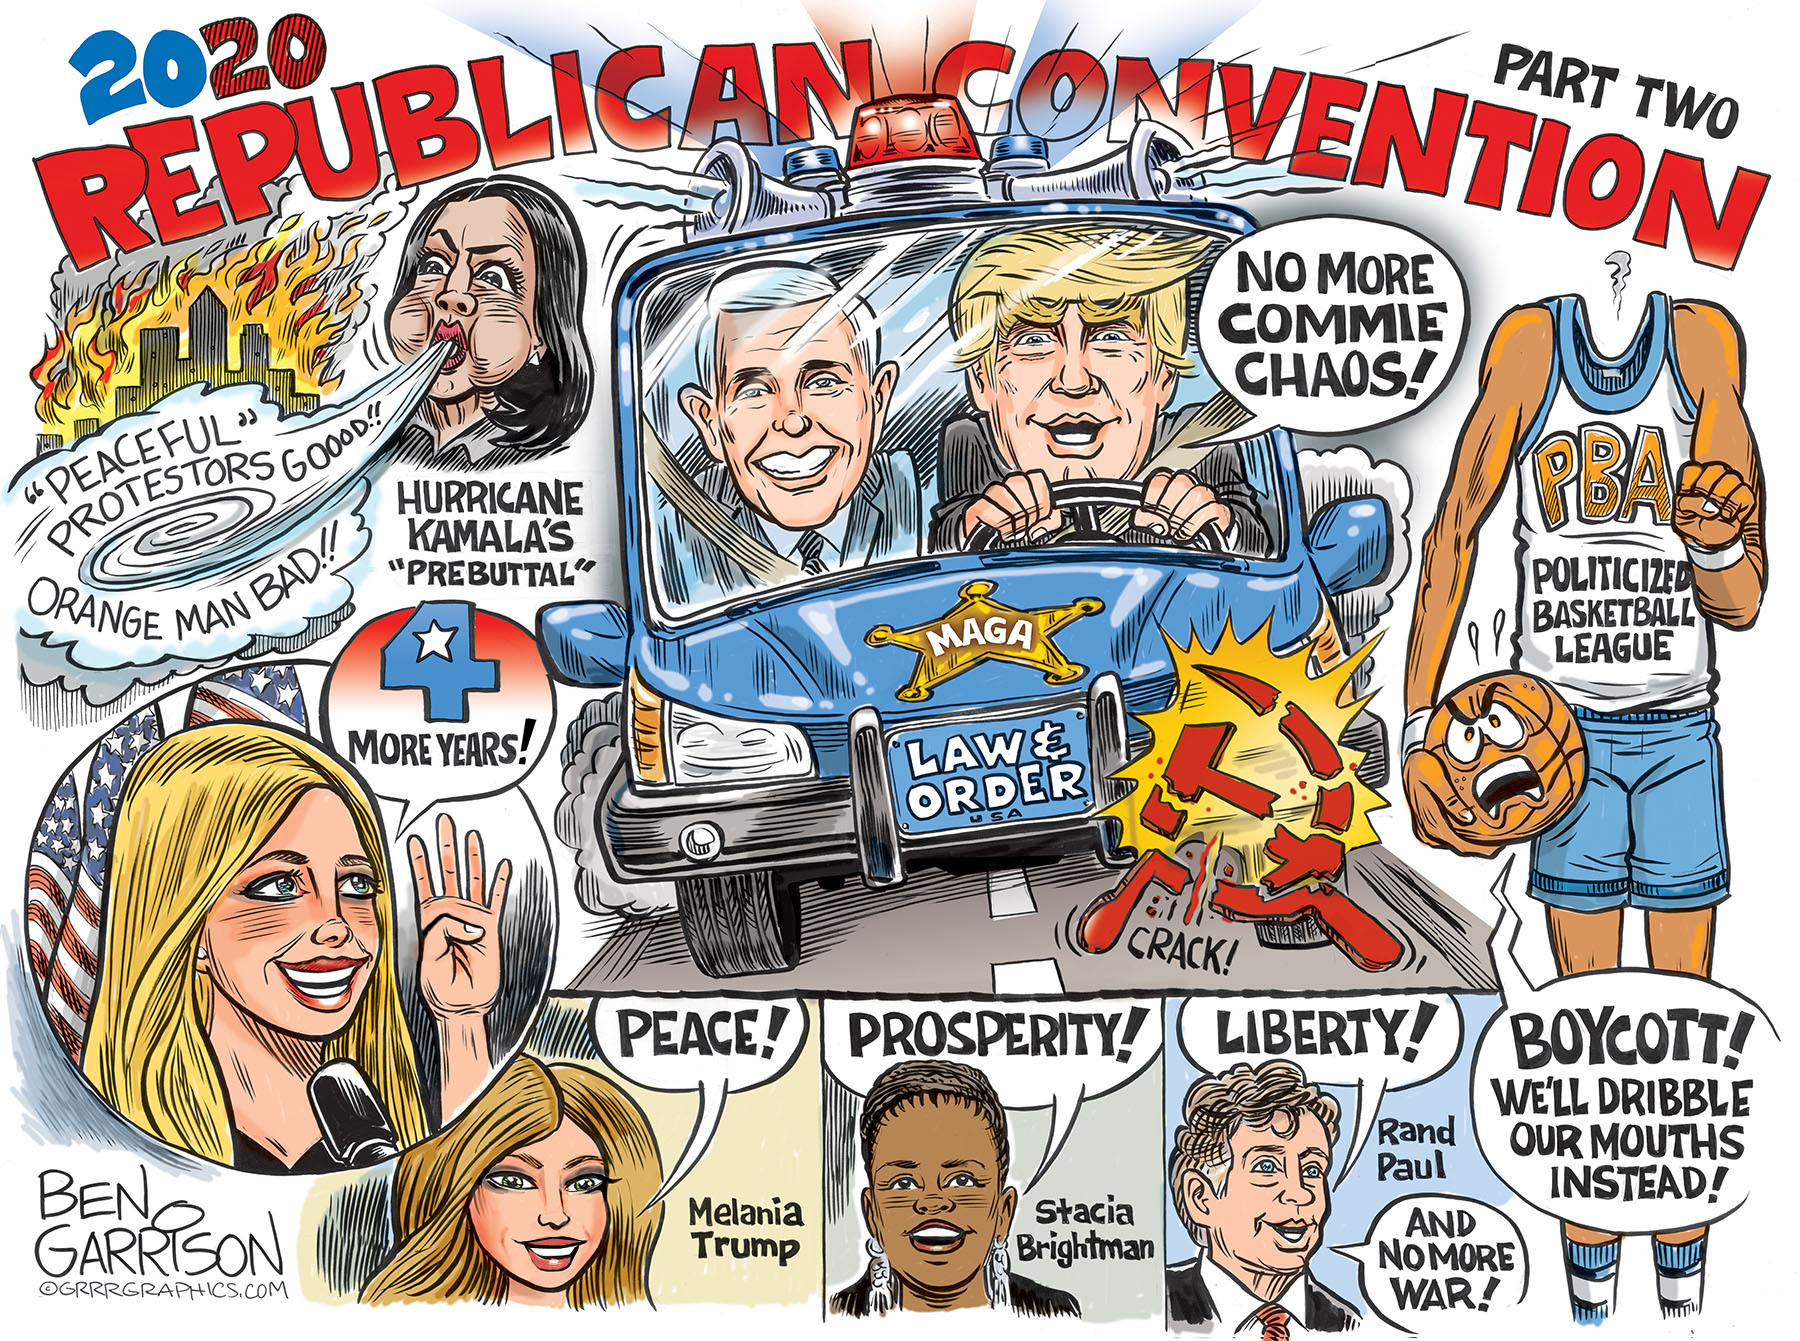 2020 RNC CONVENTION II